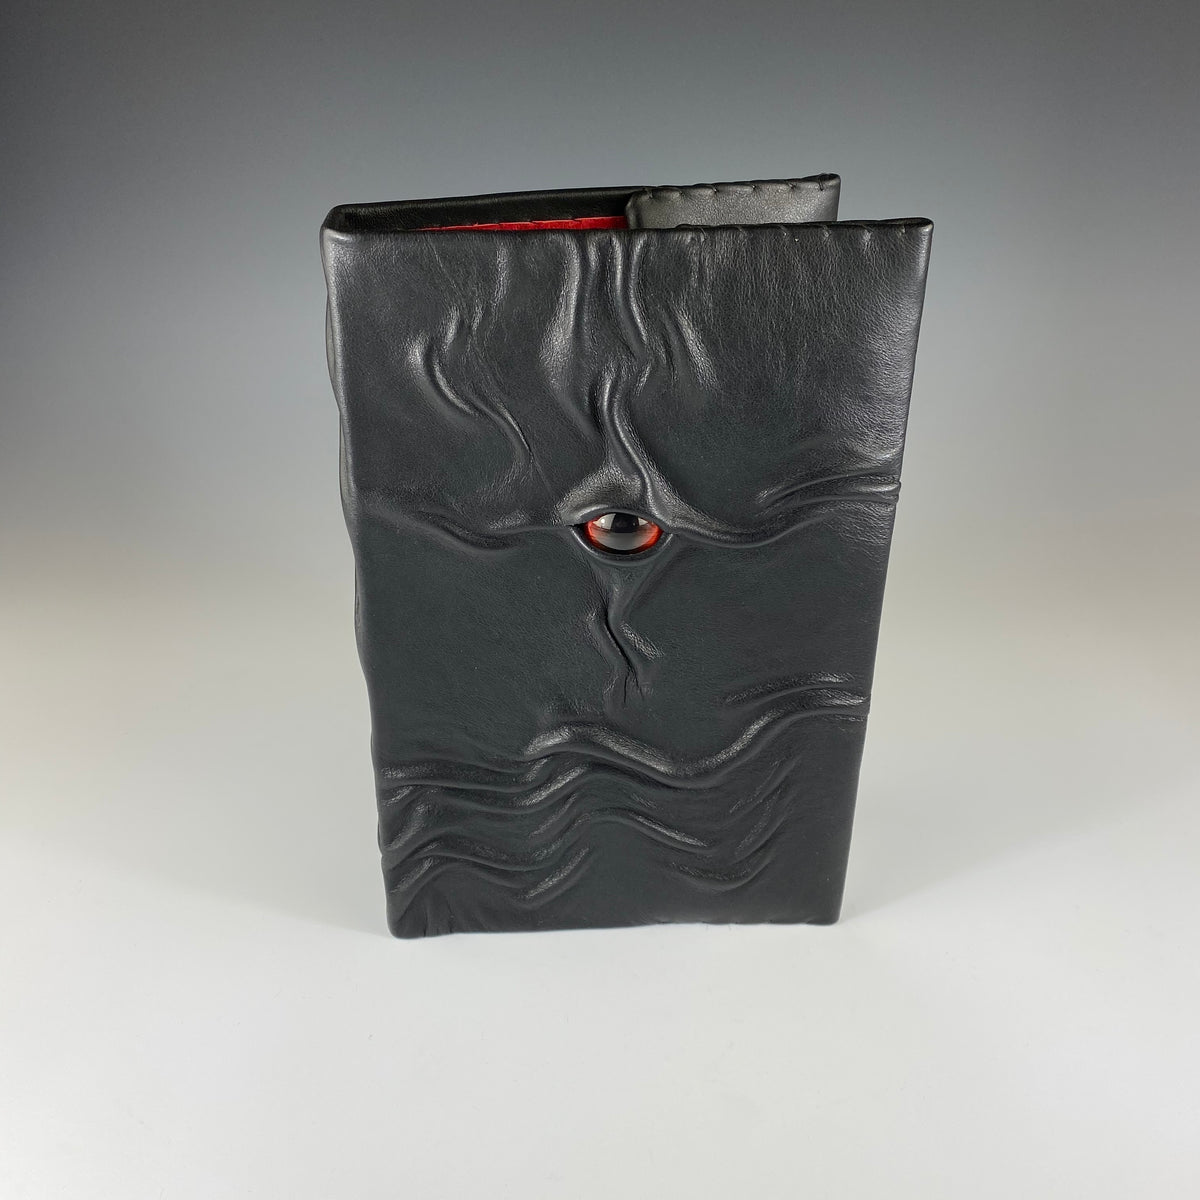 Medium Leather Journal with Eye on Cover - Heart of the Home PA